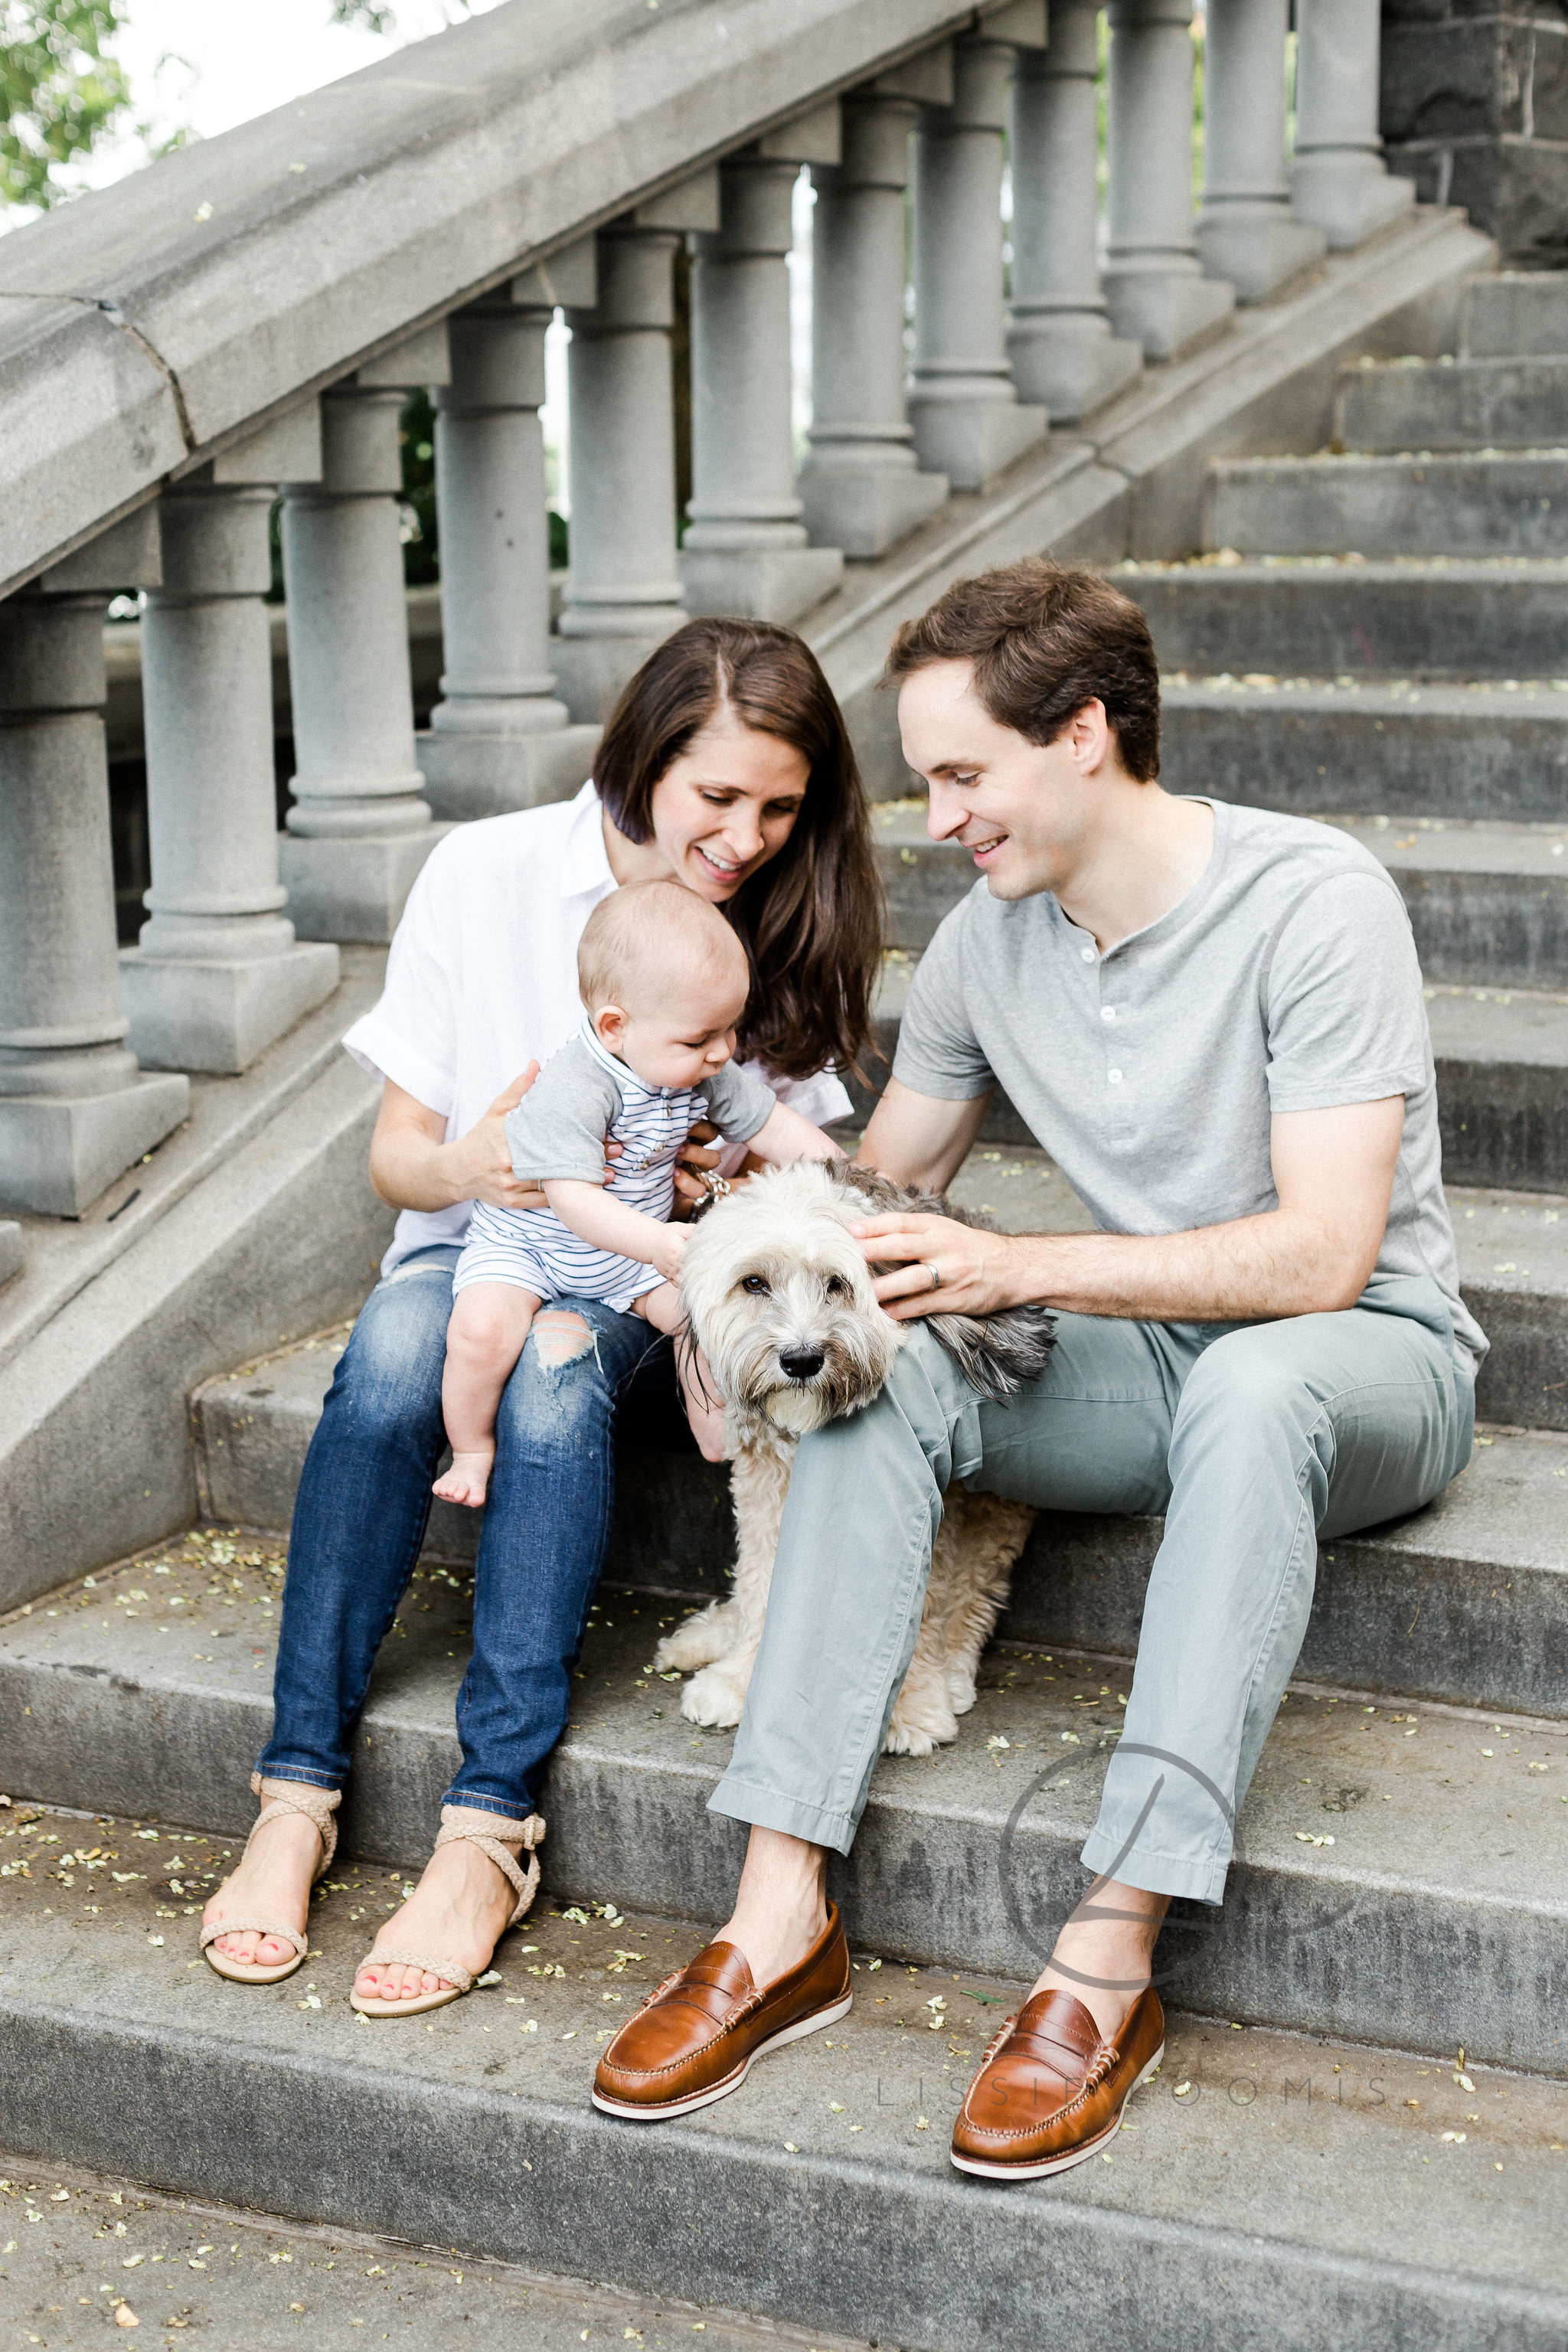 lissie-loomis-photo-newyorkcity-family-photography-baby-photographer-brooklyn57.JPG